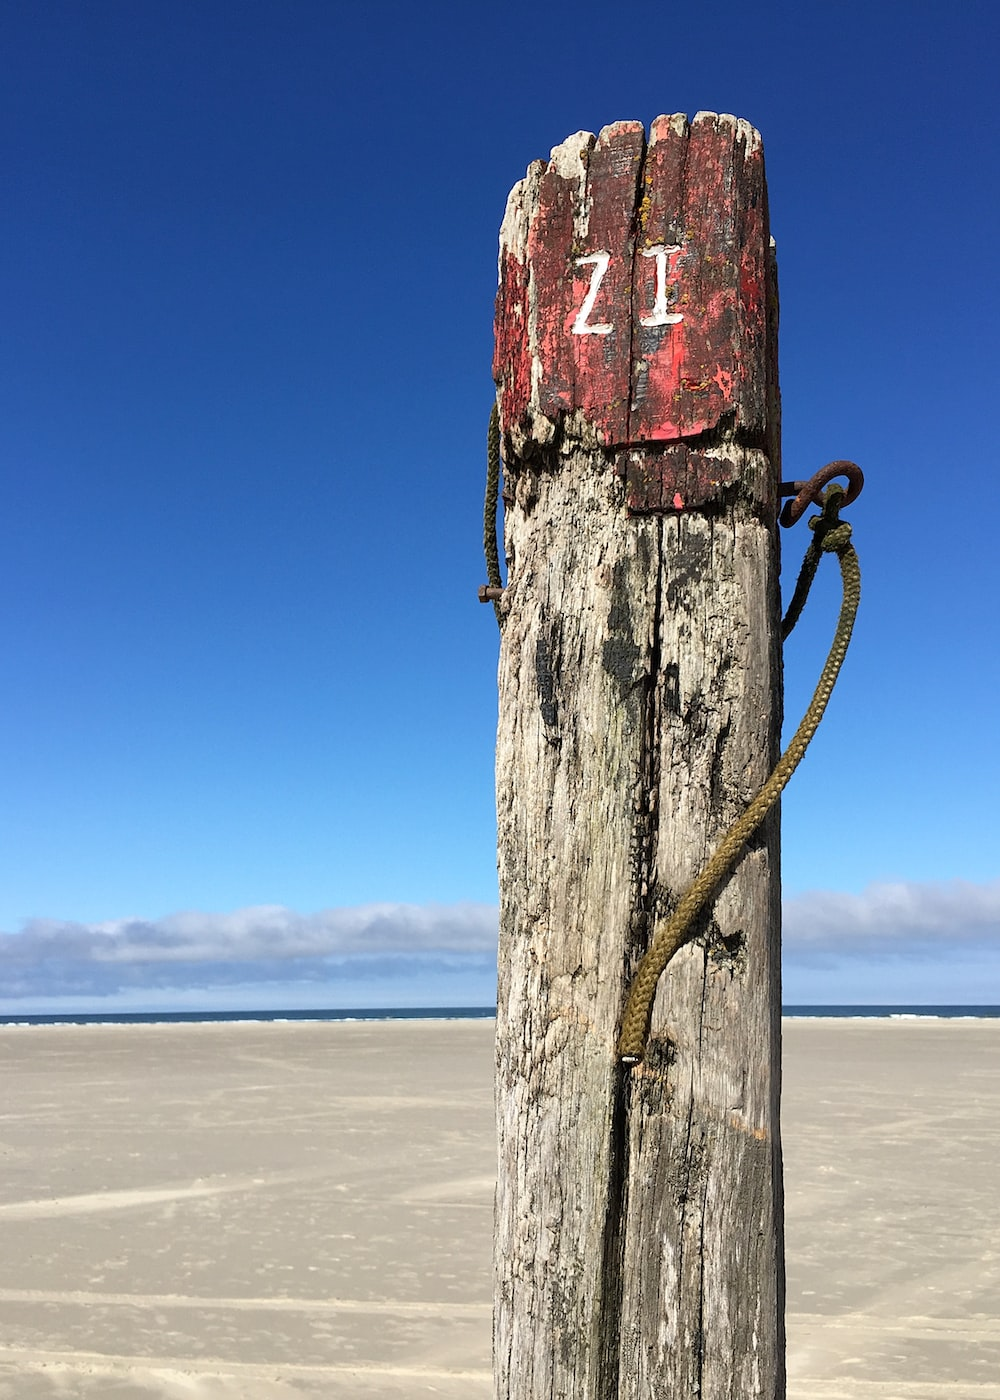 brown wooden post on beach during daytime